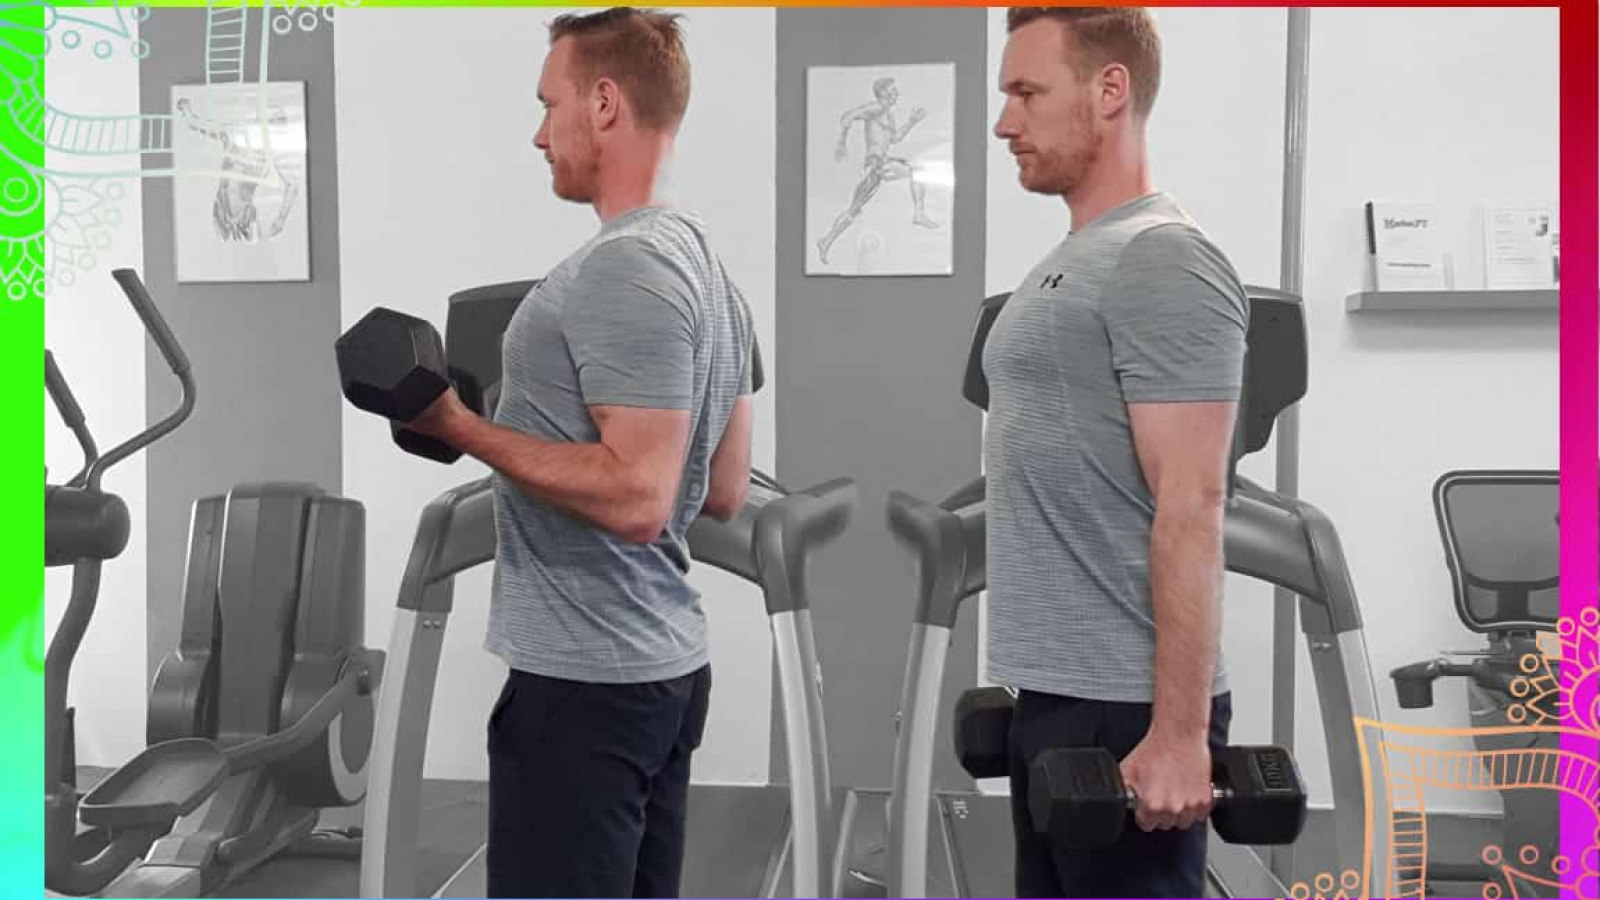 demonstration of Bicep curl